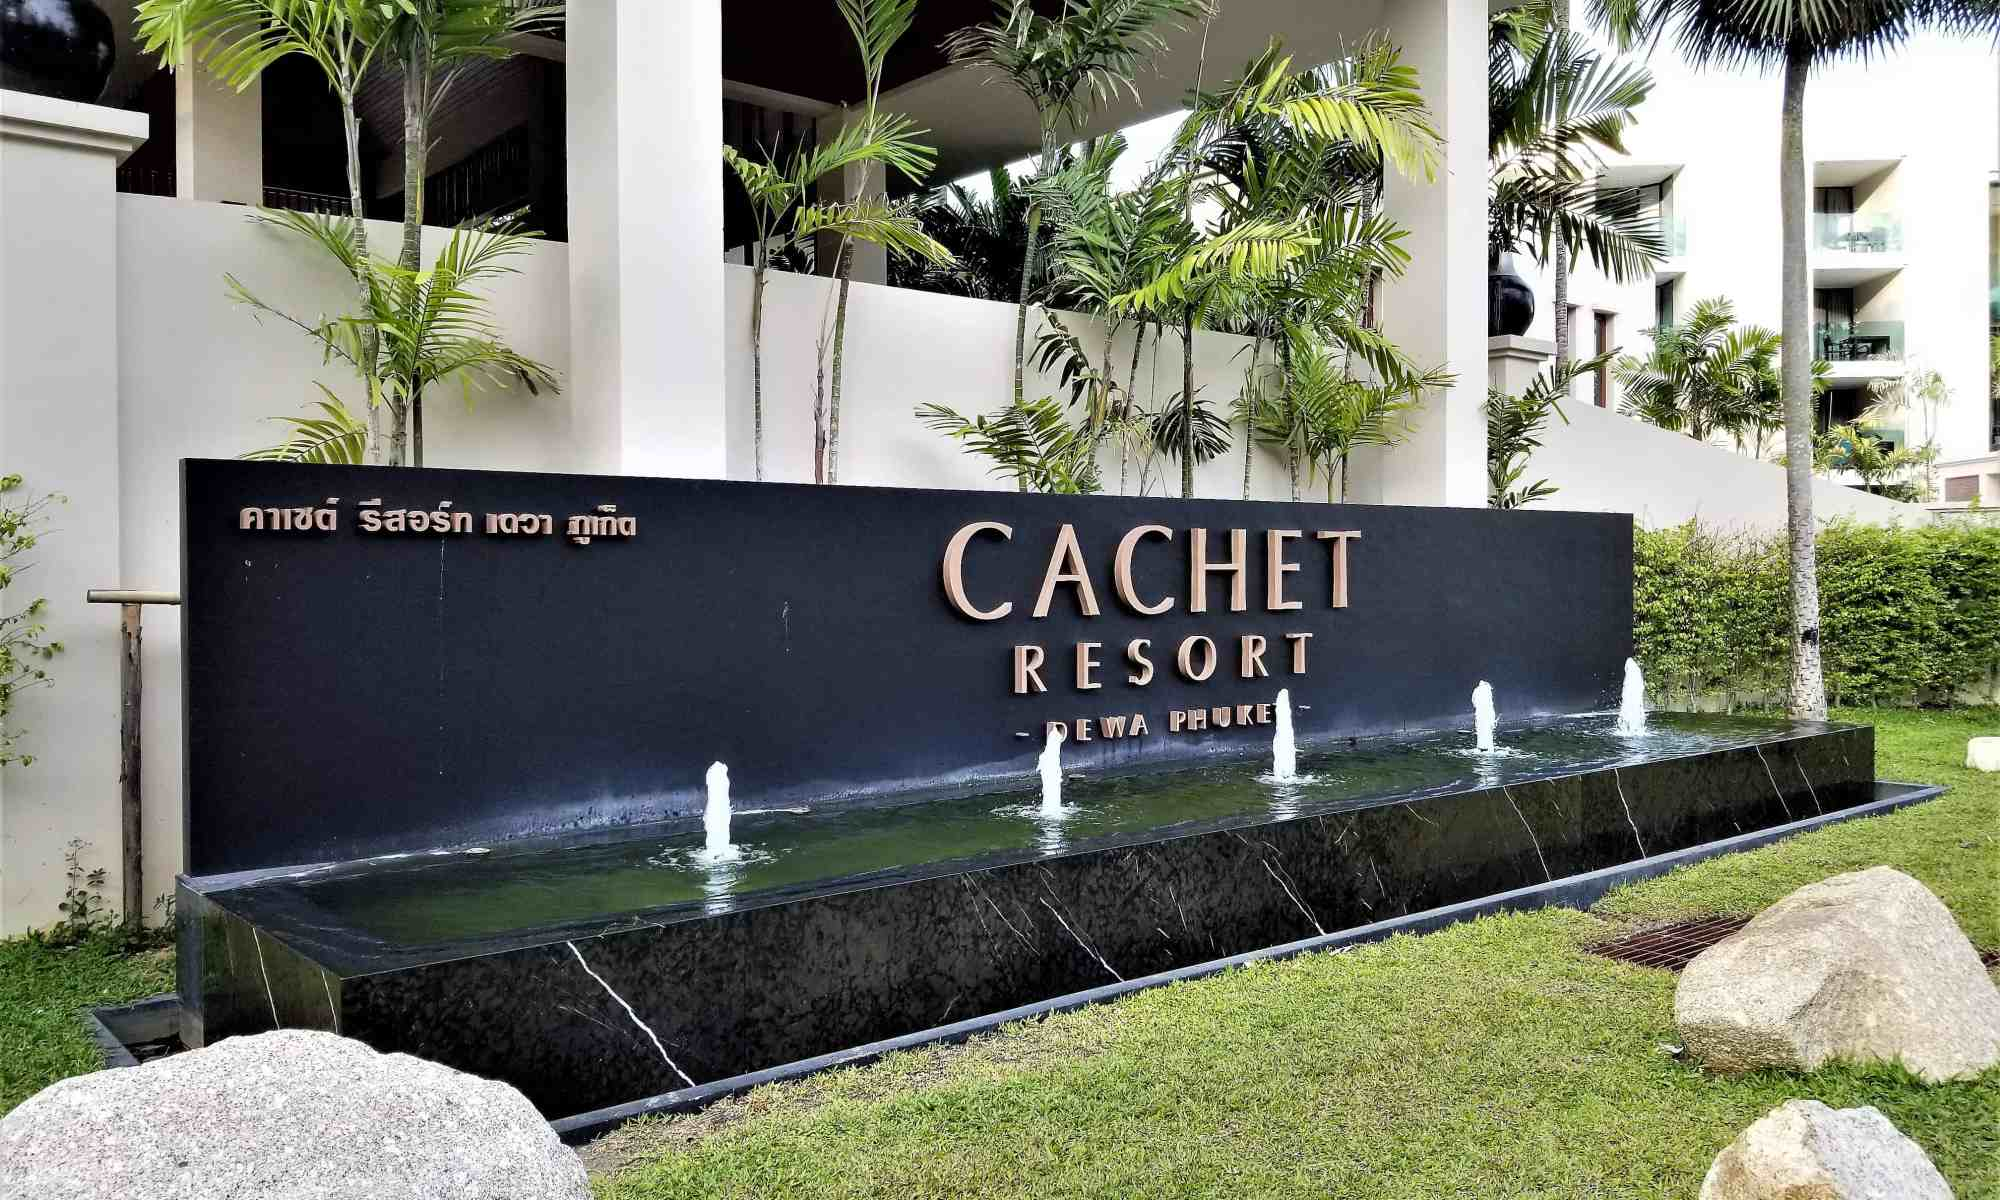 image-of-cachet-resort-dewa-phuket-entrance